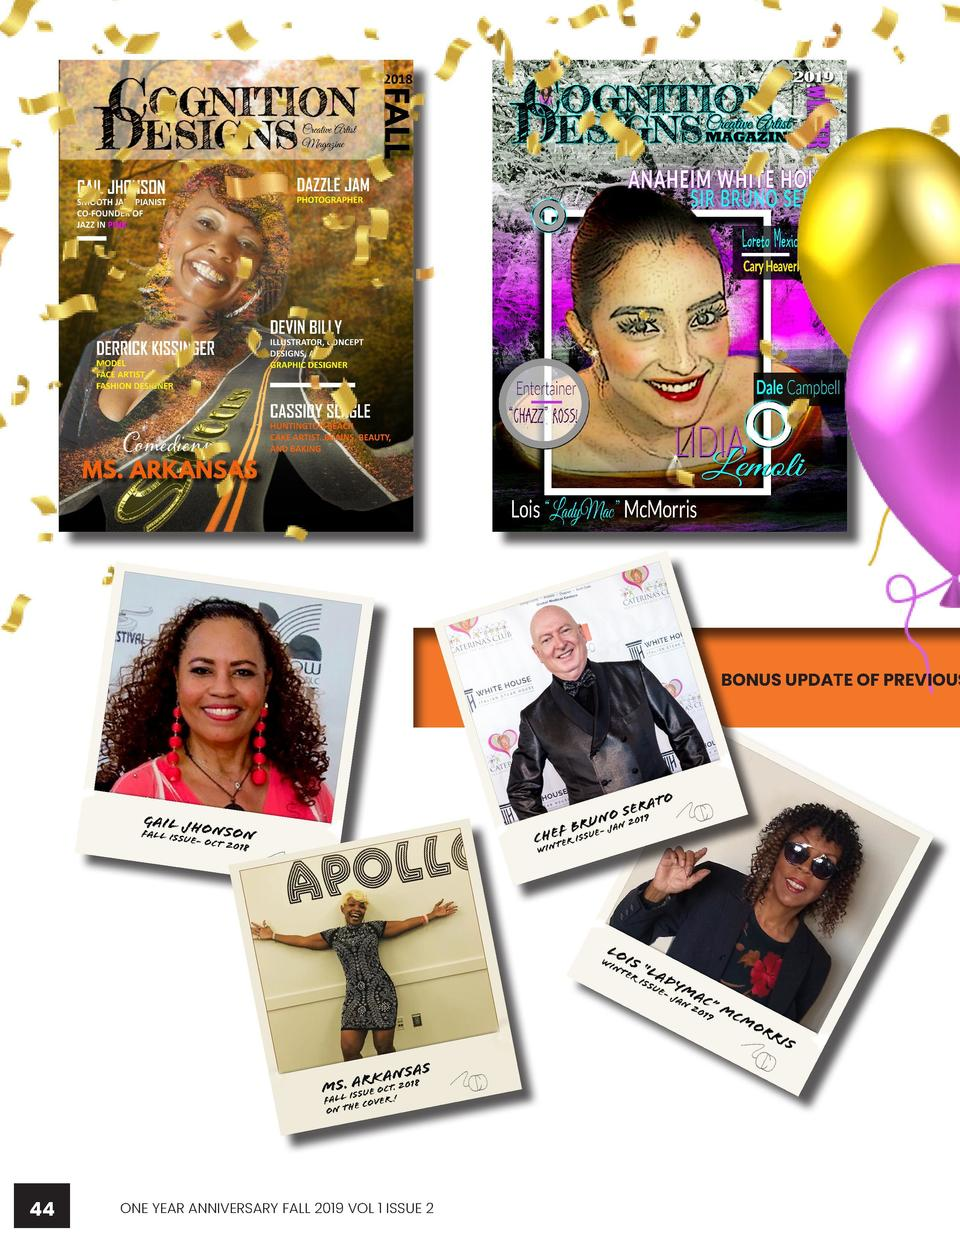 WWWW.CREATIVEARTISTMAGAZINE.COM  BONUS UPDATE OF PREVIOUSLY FEATURED ARTIST  44  ONE YEAR ANNIVERSARY FALL 2019 VOL 1 ISSU...